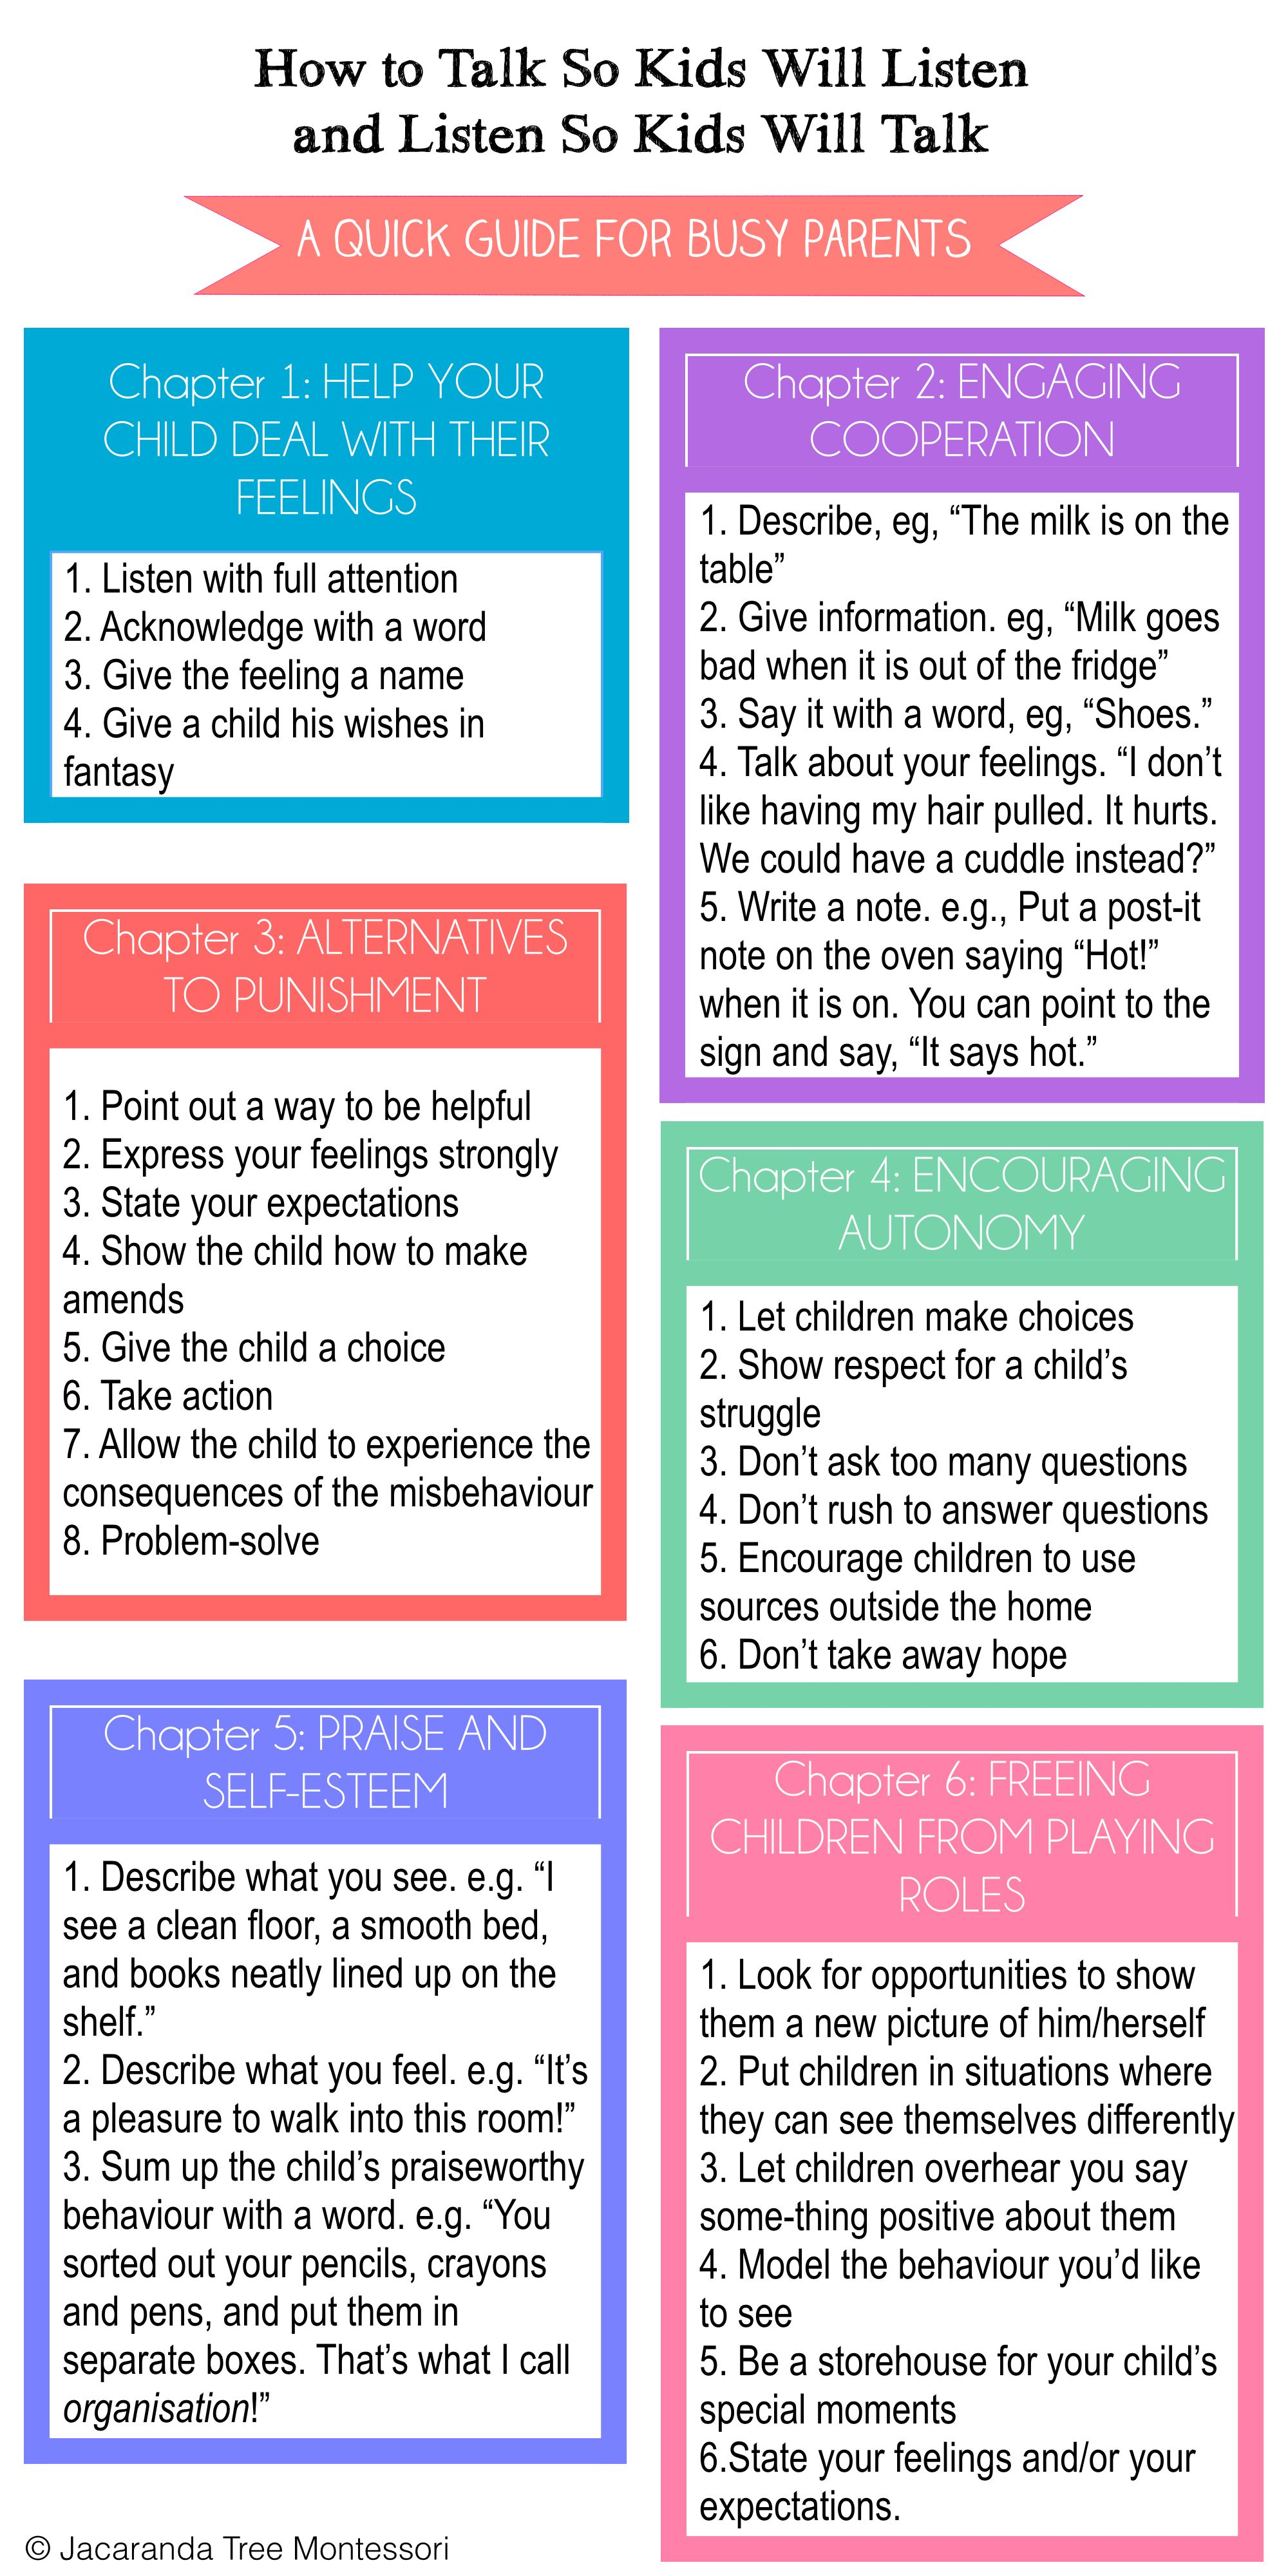 How To Talk So Kids Will Listen And Listen So Kids Will